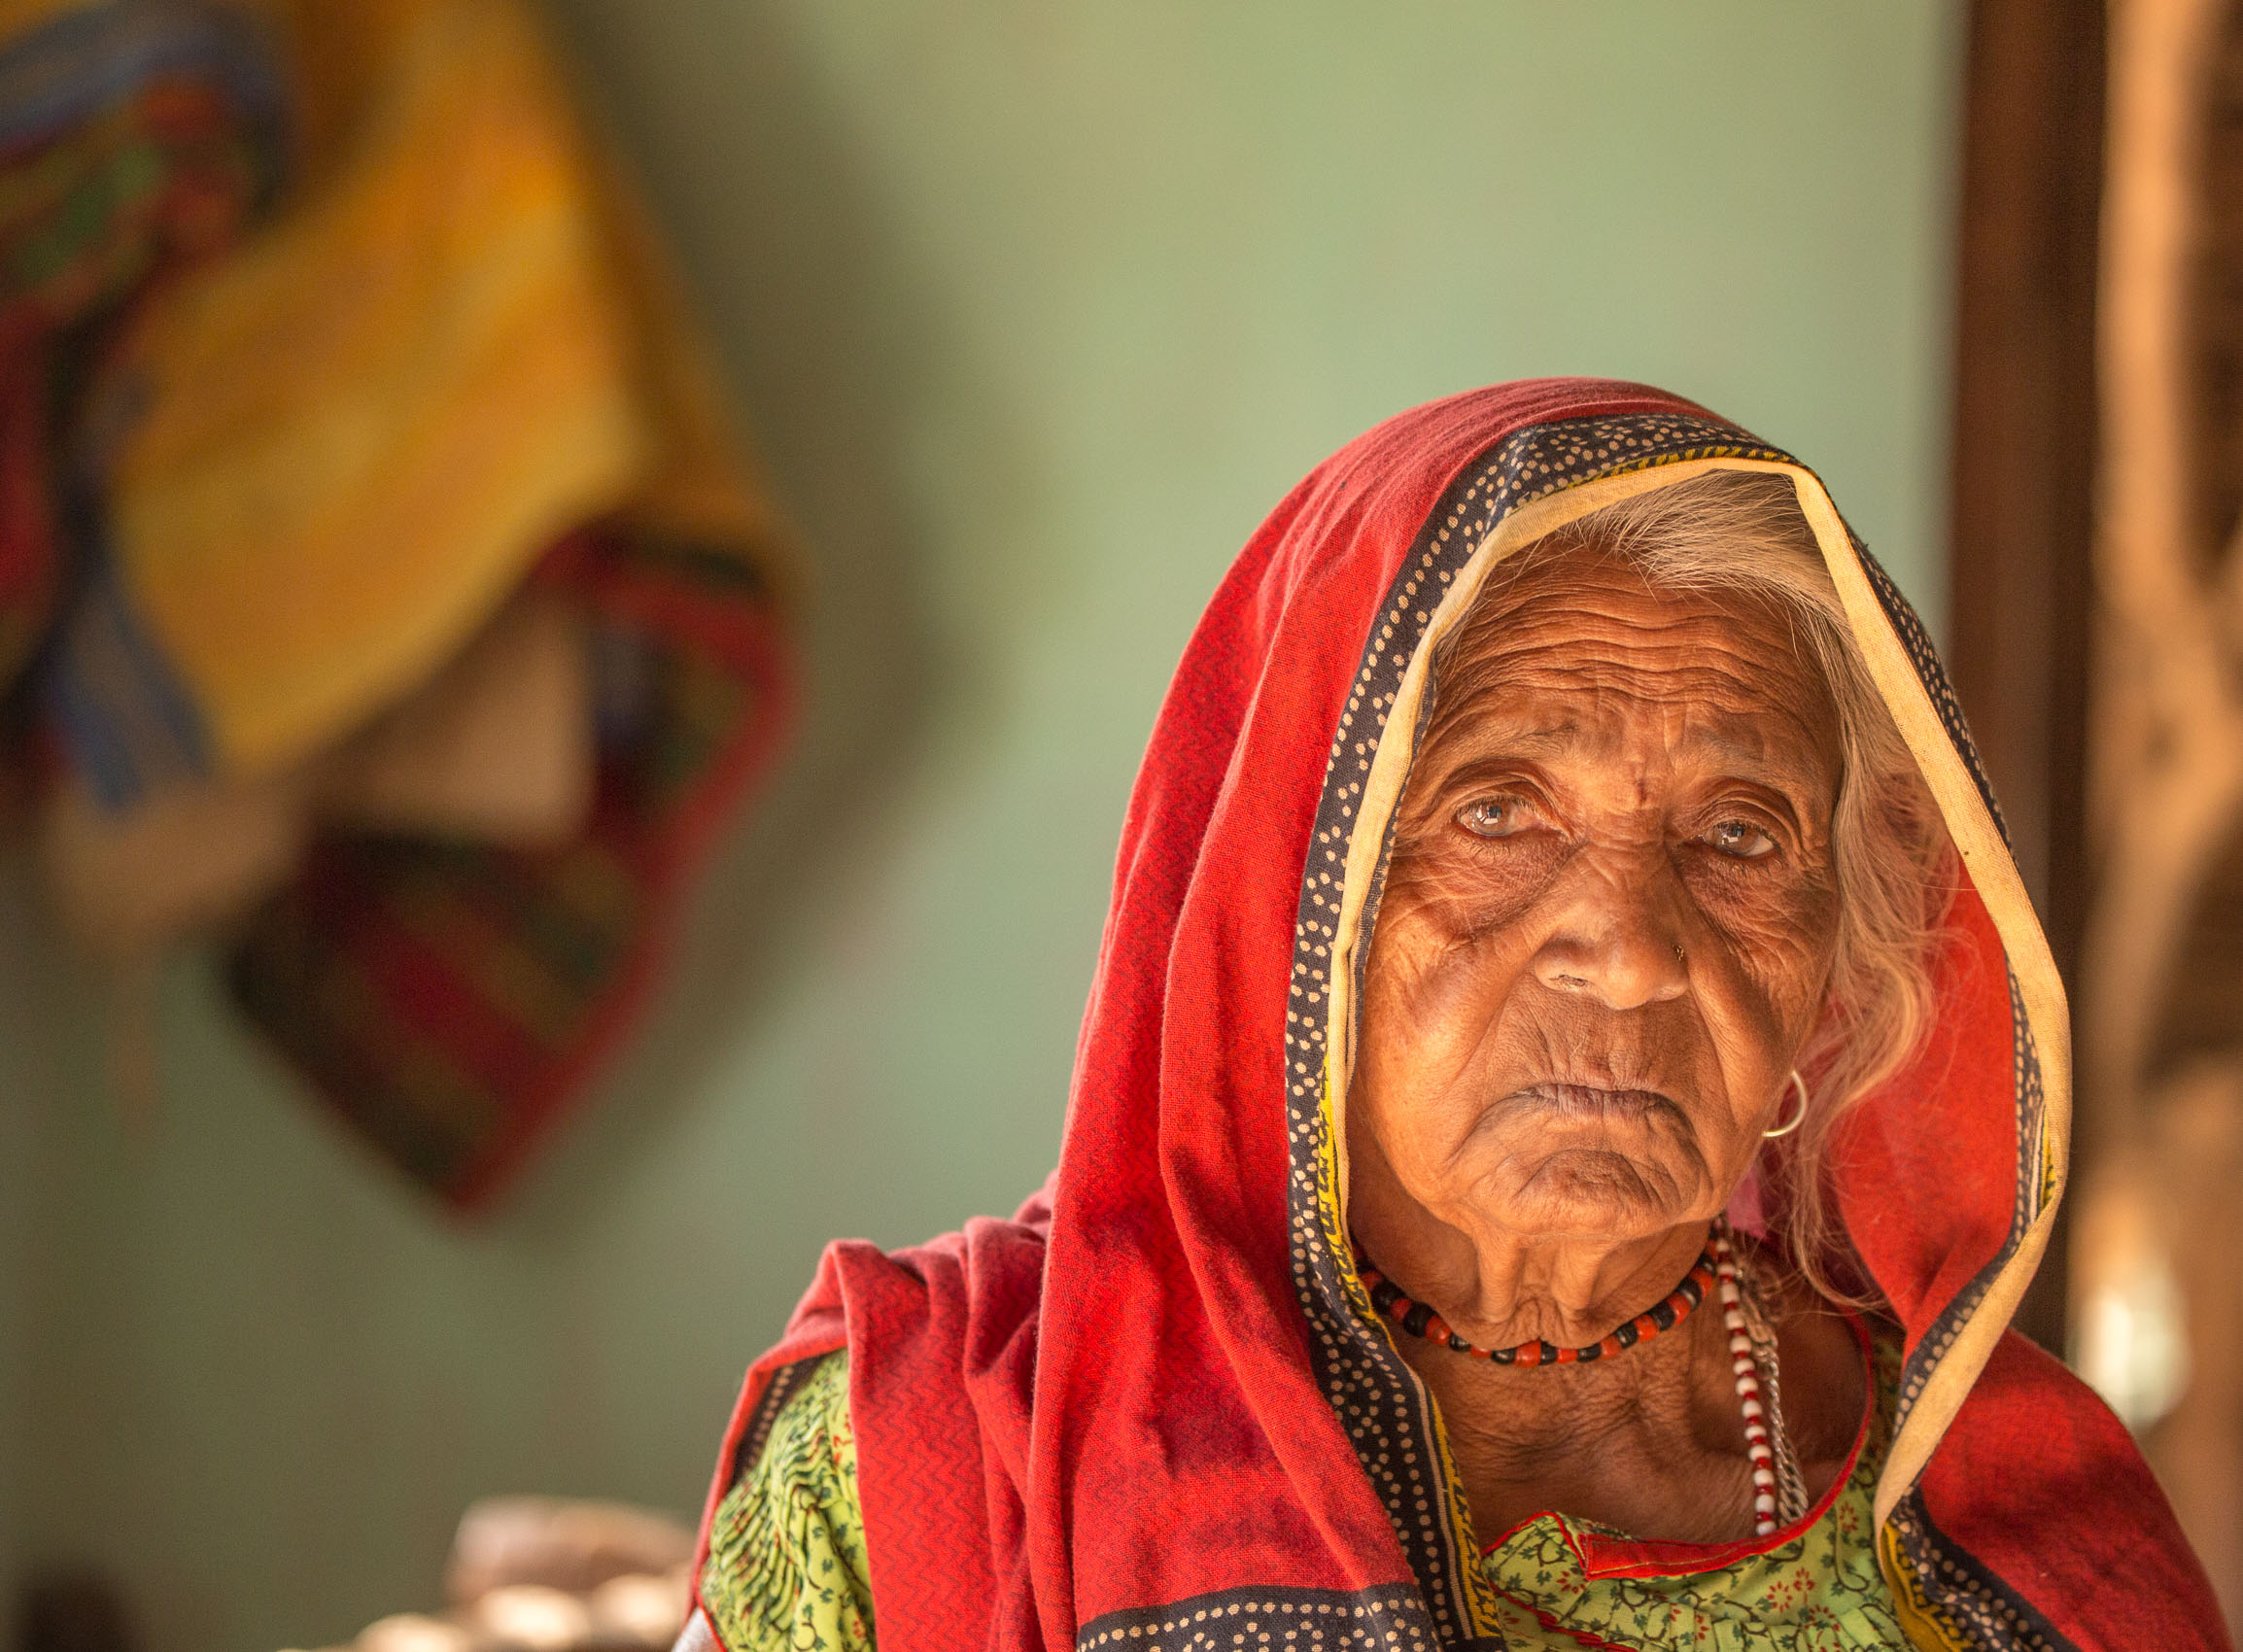 India-Gujarat-Old-Woman-Red-Shawl